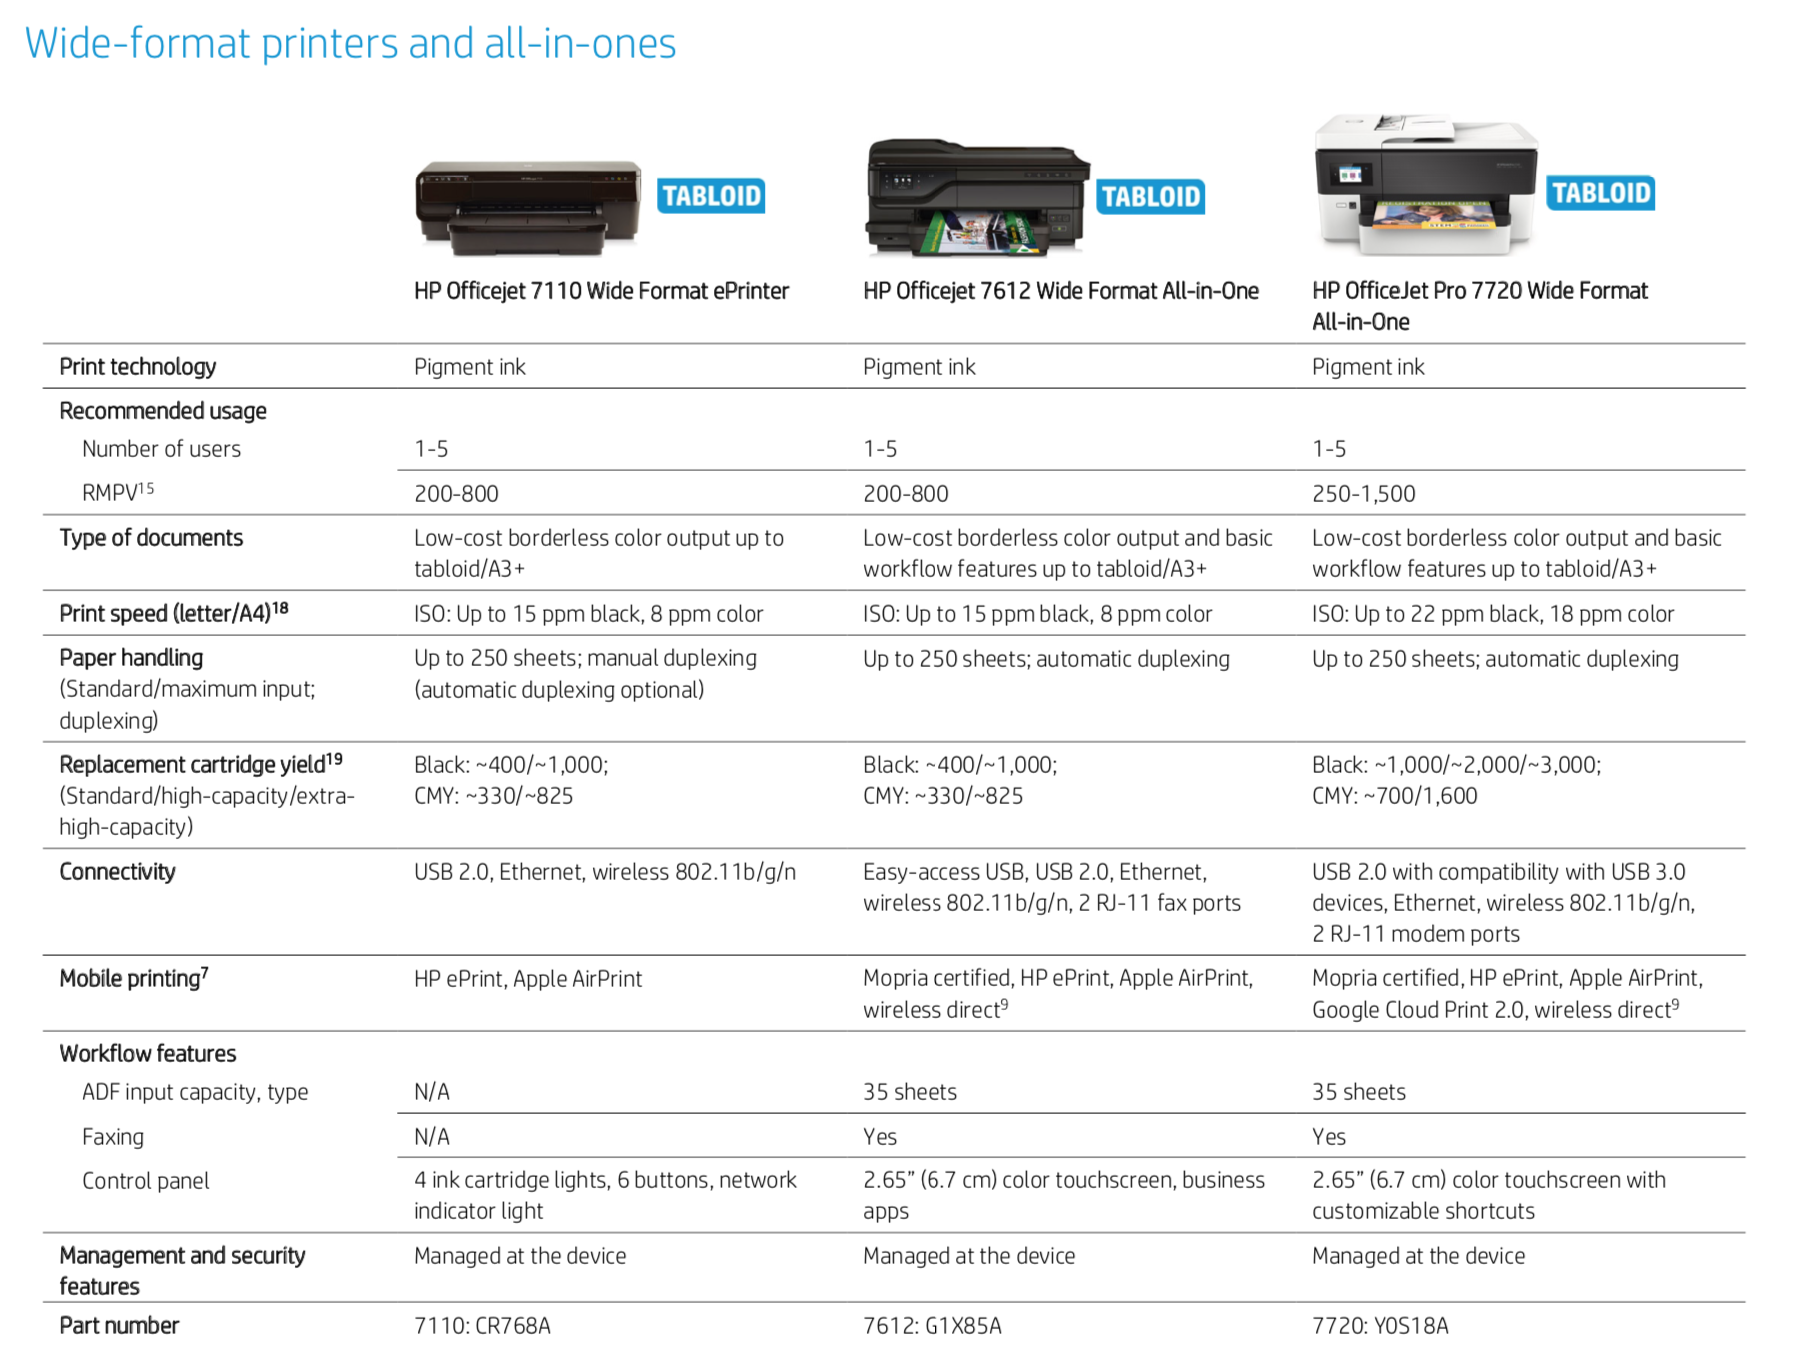 Wide-Format printers for all-in-ones